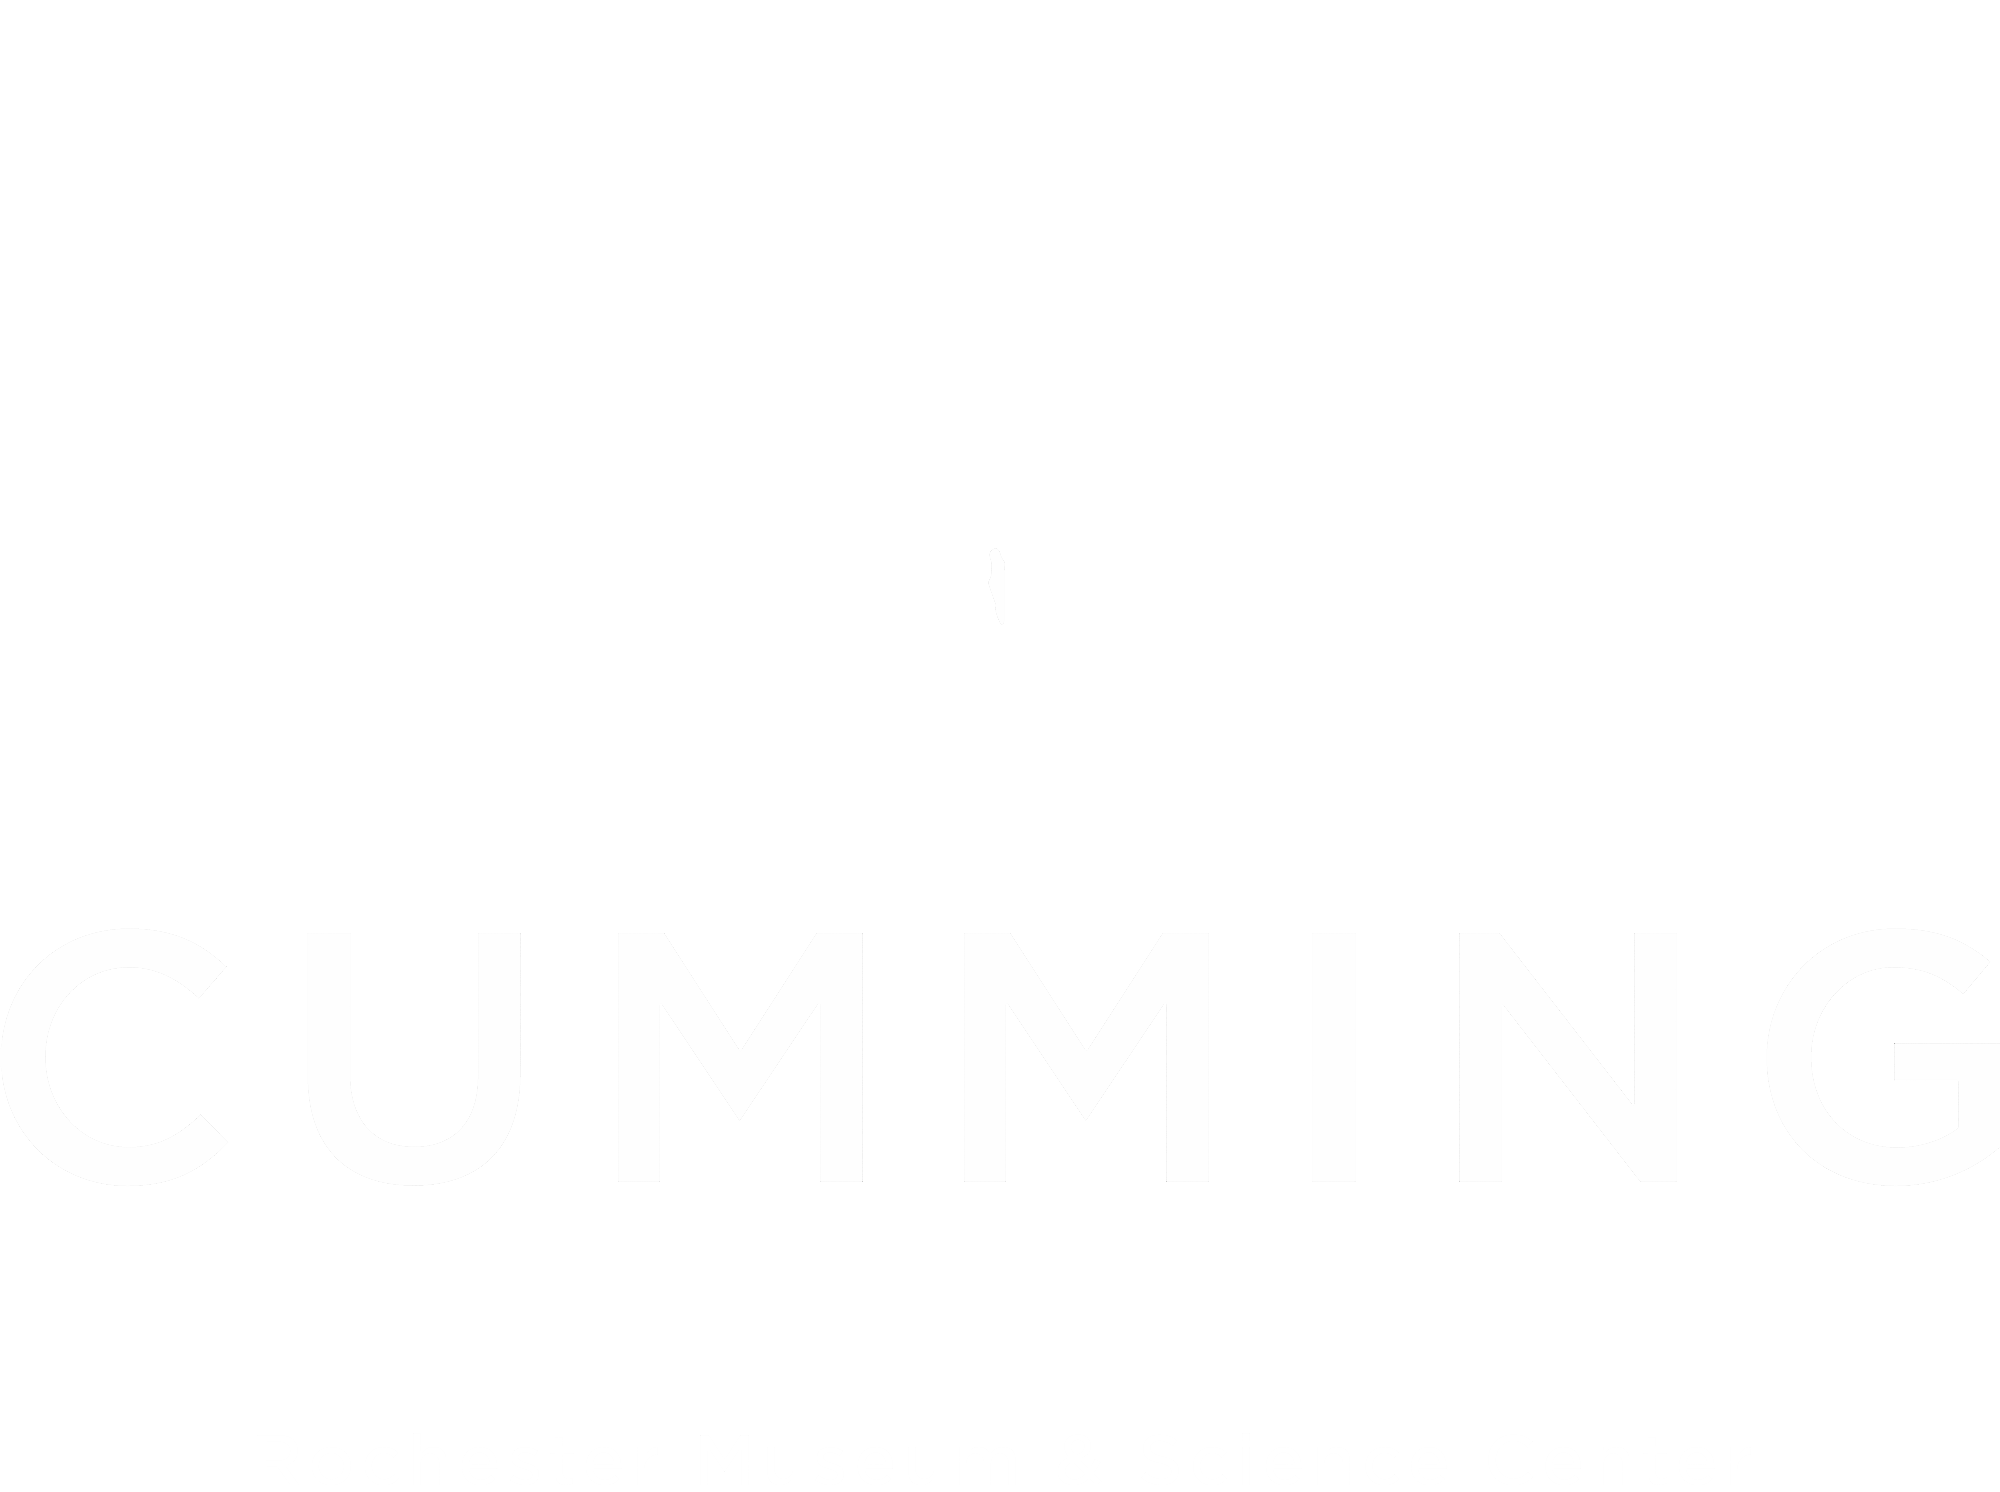 Cumming-Nature-Center-wh.png